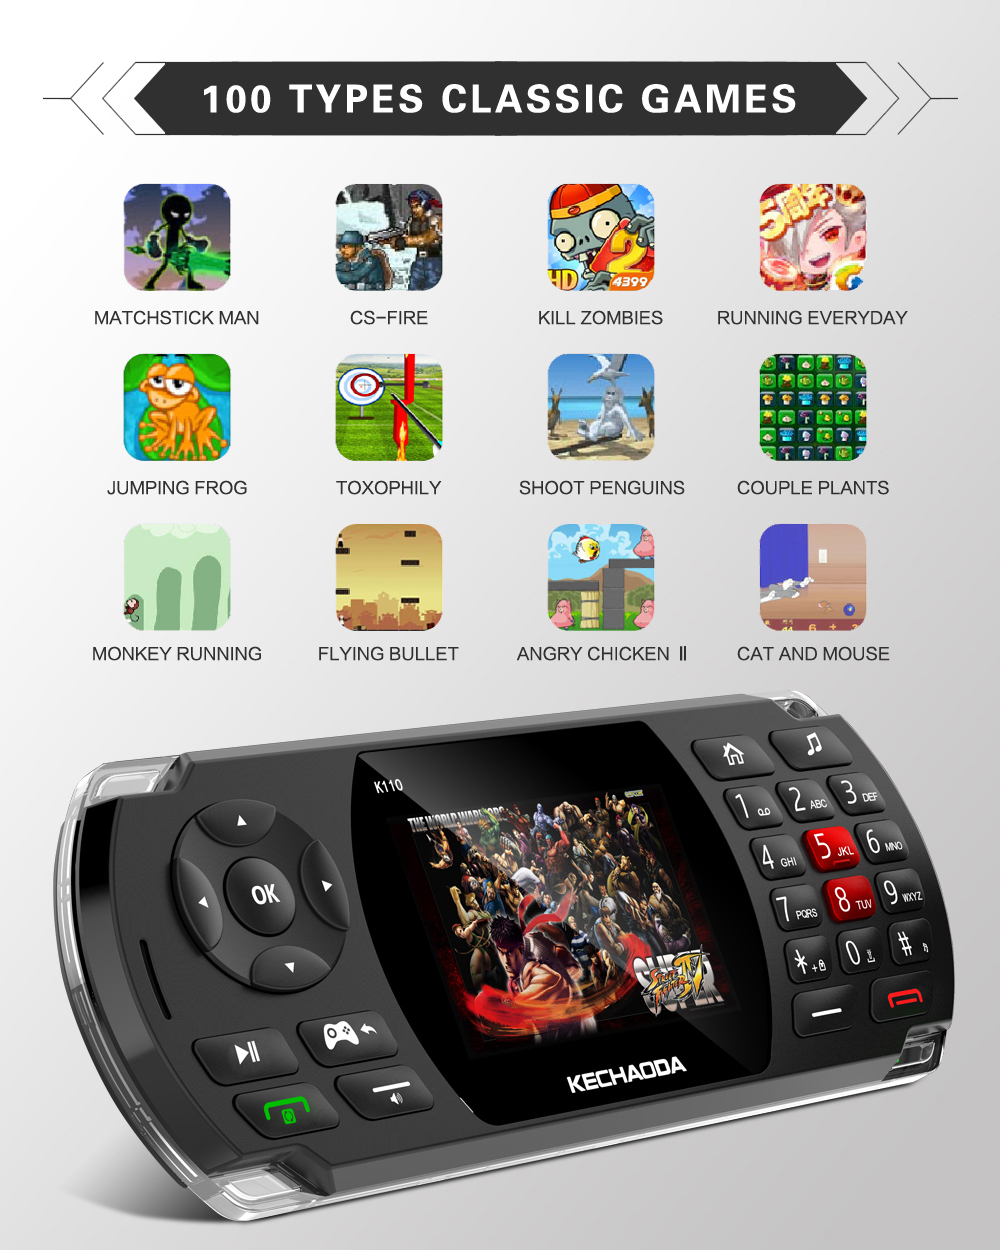 KECHAODA K110 Game Phone 2.8 inch 2600mAh 100 Classic Game Torch Big Sound Speaker With Vibration Dual SIM Card Dual Standby Feature Phone